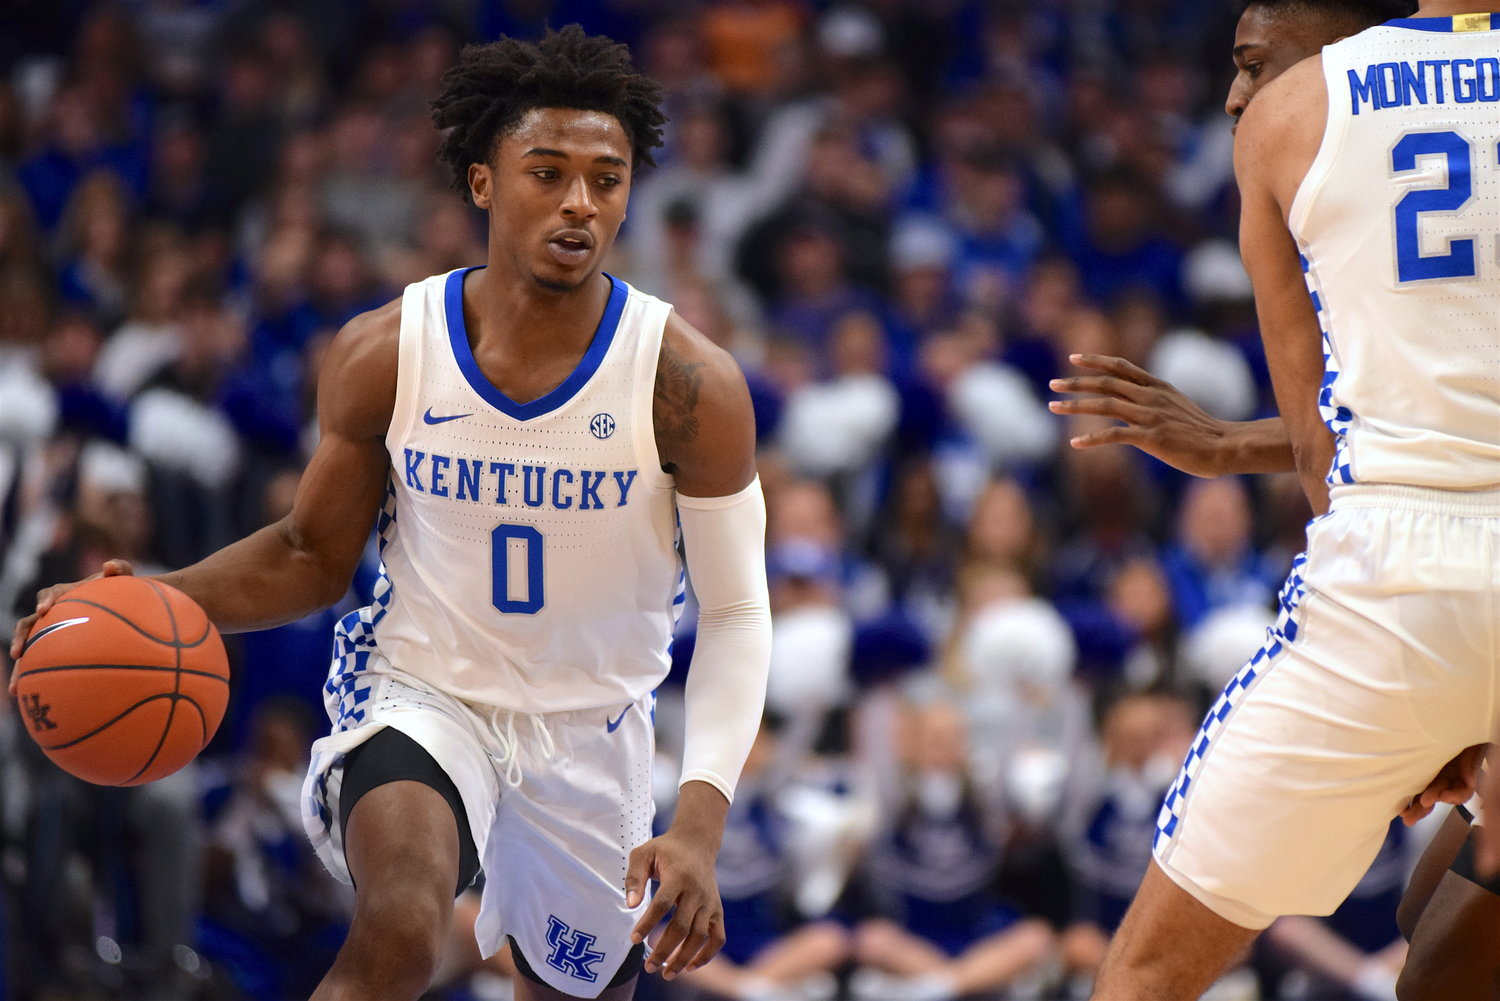 Ashton Hagans scored 21 points and added seven rebounds and seven assists in Kentucky's 67-53 win over George Tech Saturday at Rupp Arena. (Kentucky Today/Chris Reynolds)